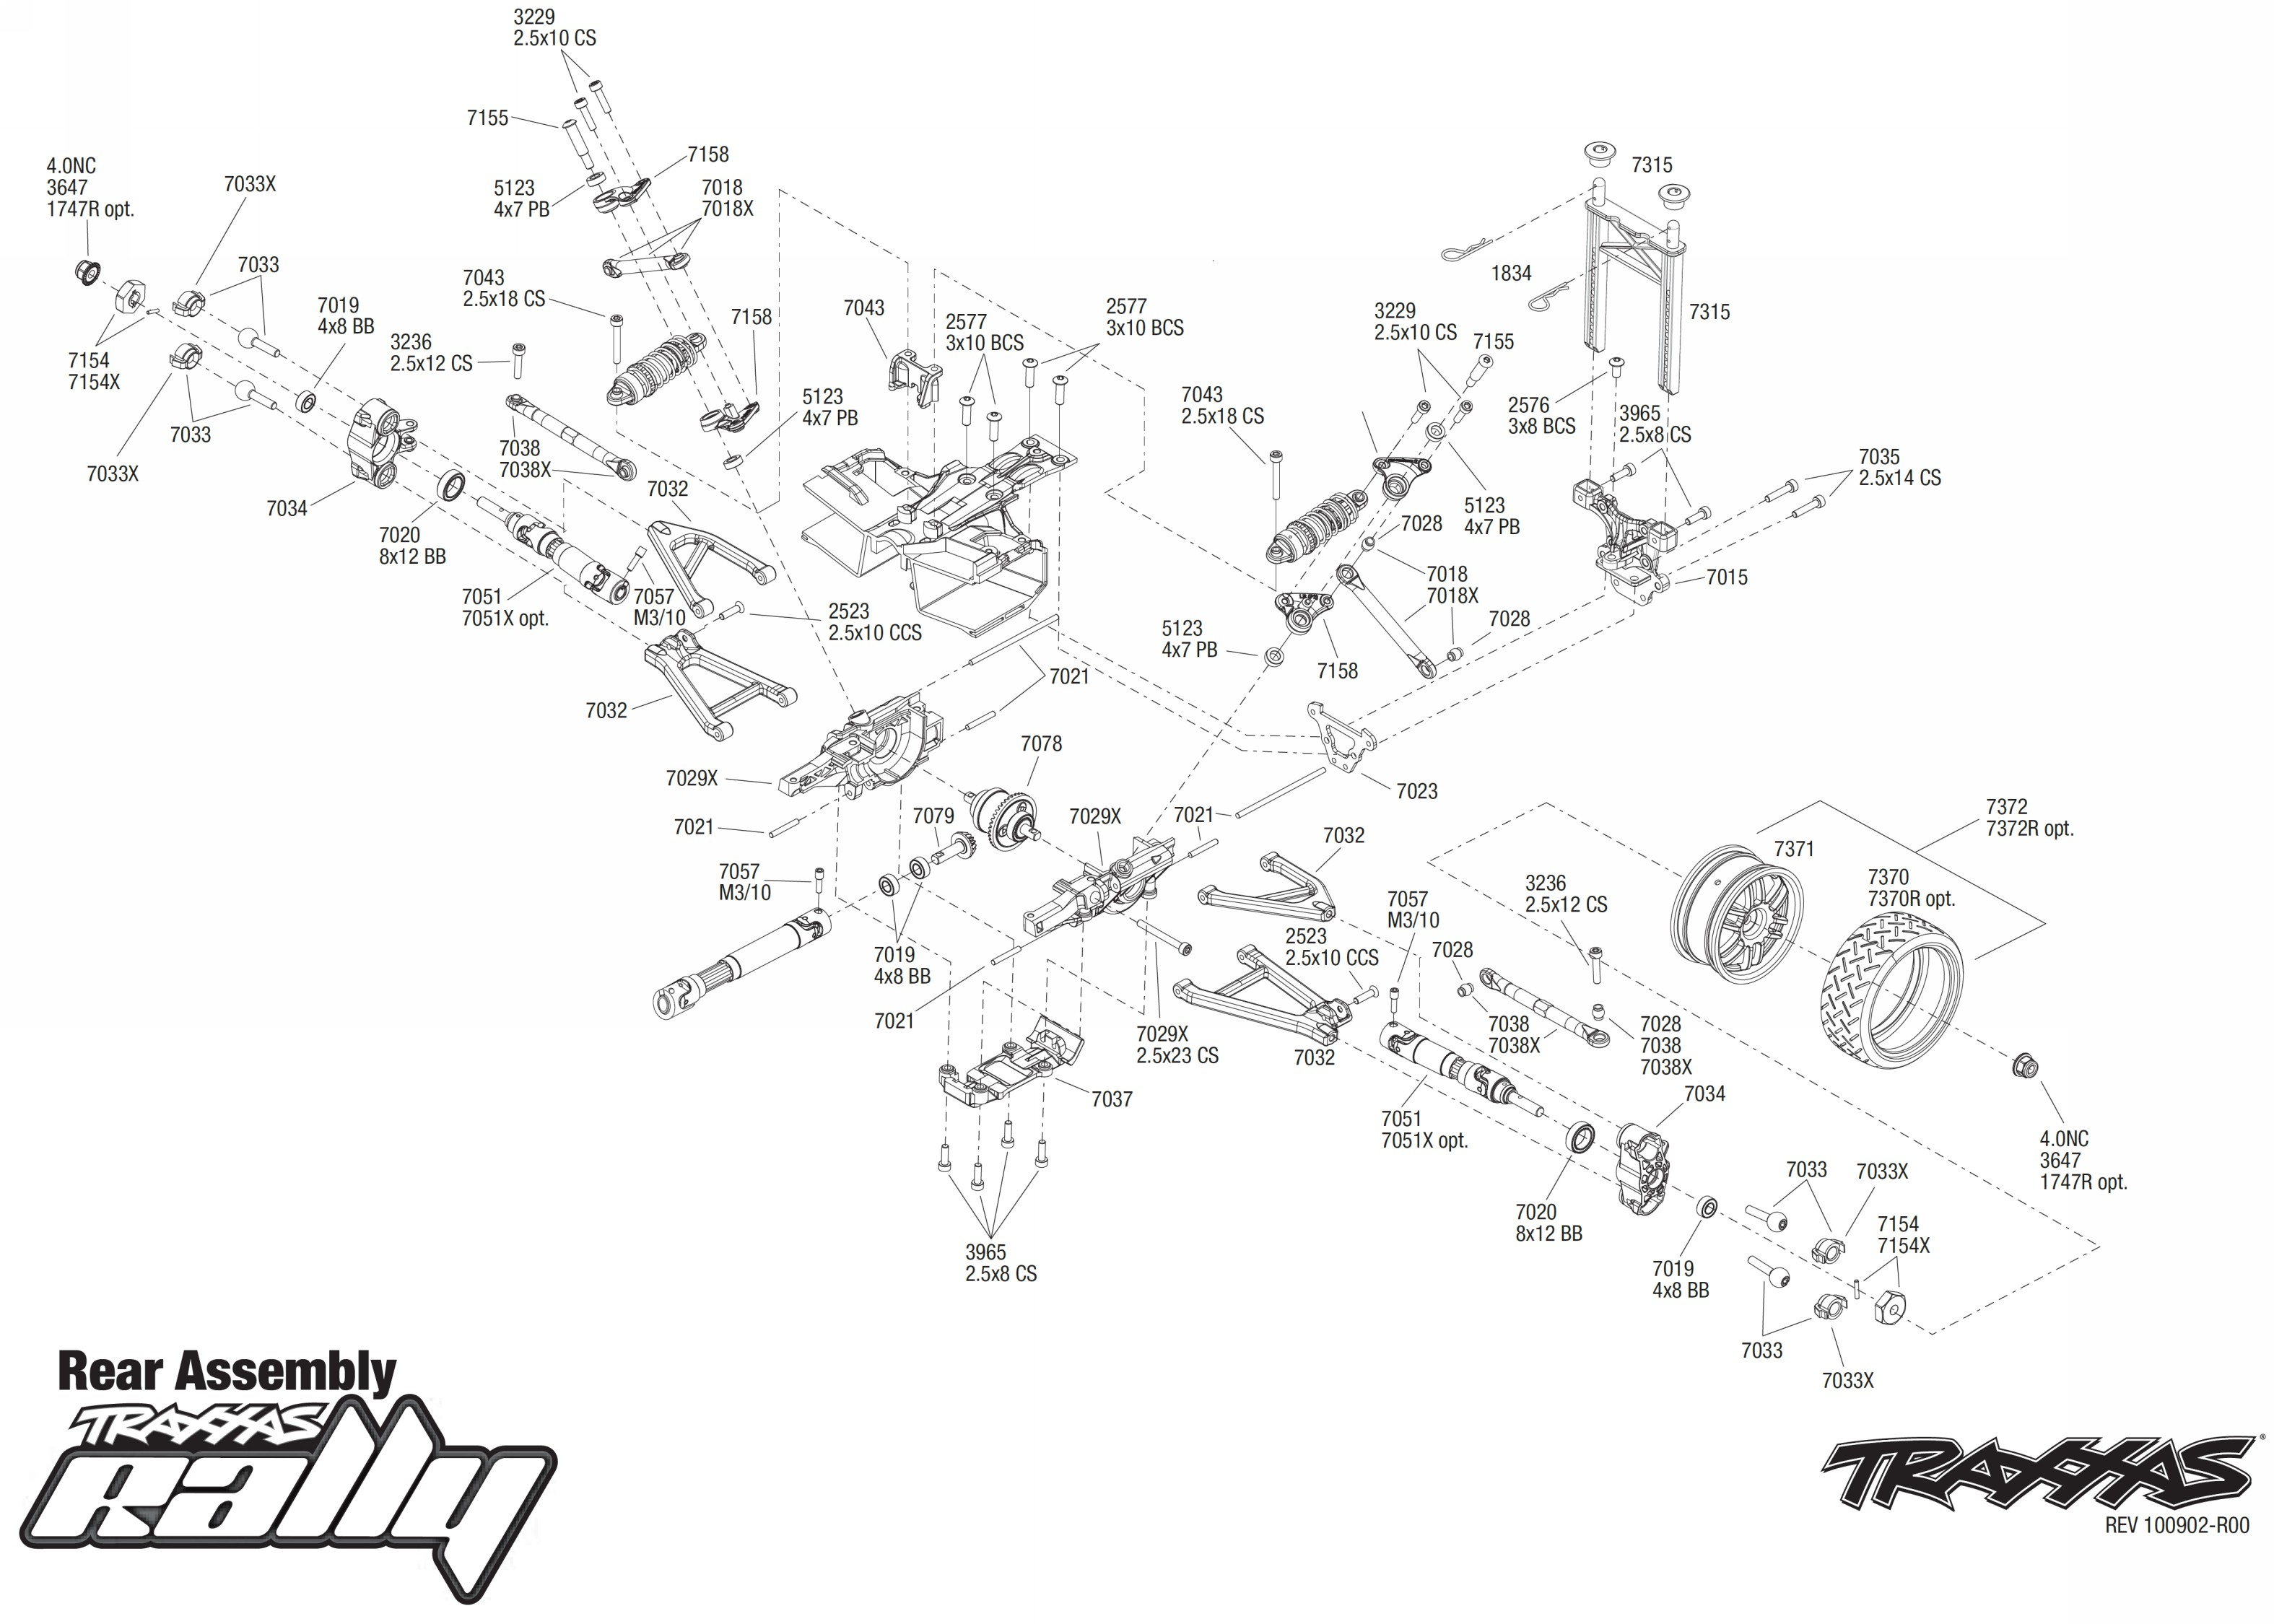 Traxxas 1 16 Parts Diagram Great Installation Of Wiring Revo Vxl E Exploded View Rally Rear Part Astra Rh Astramodel Cz R C Summit Hop Up Manual